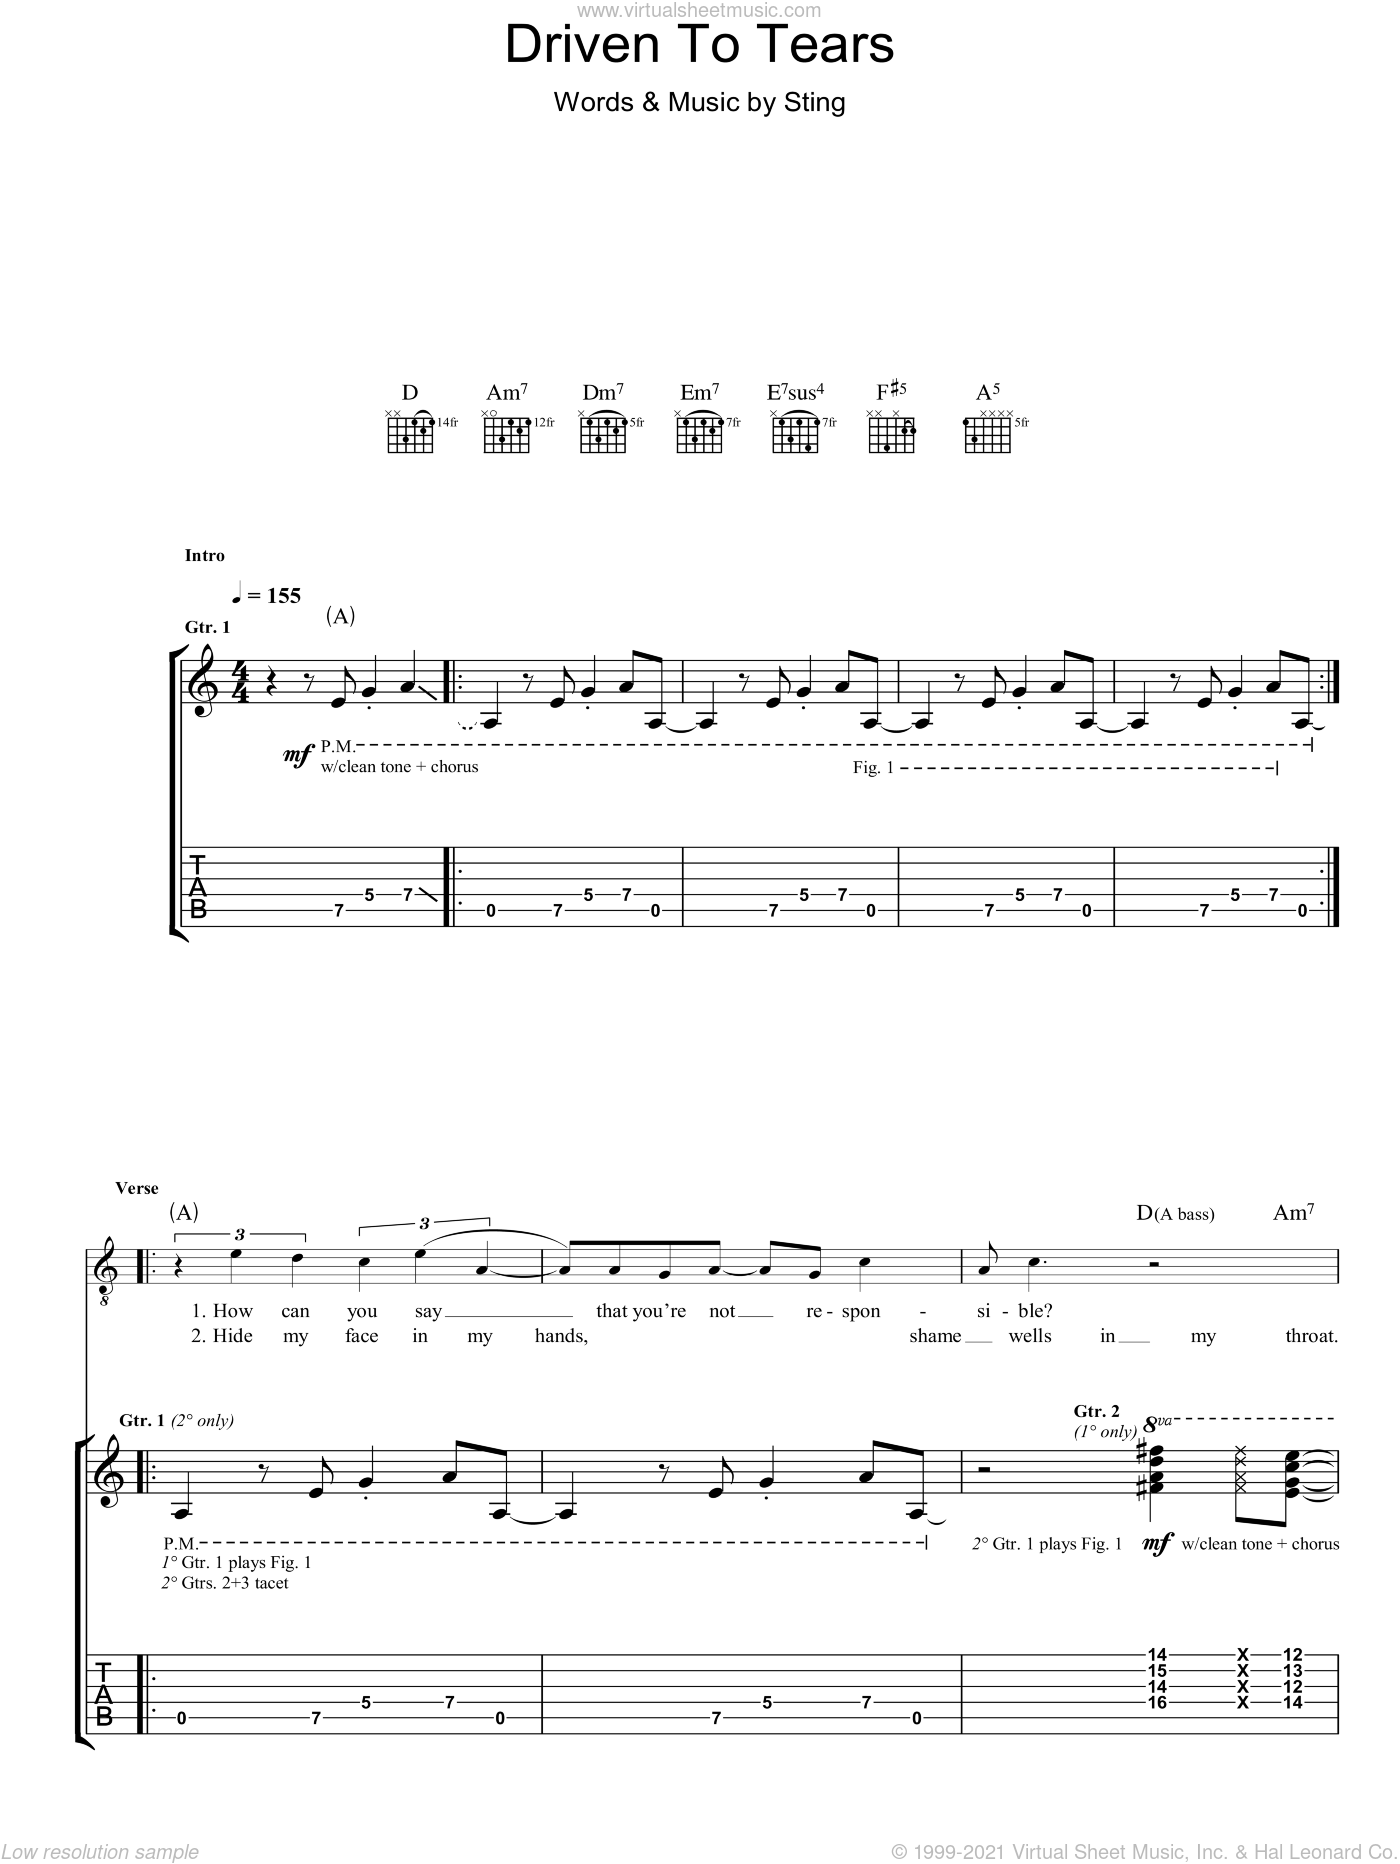 Driven To Tears sheet music for guitar (tablature) by The Police and Sting, intermediate